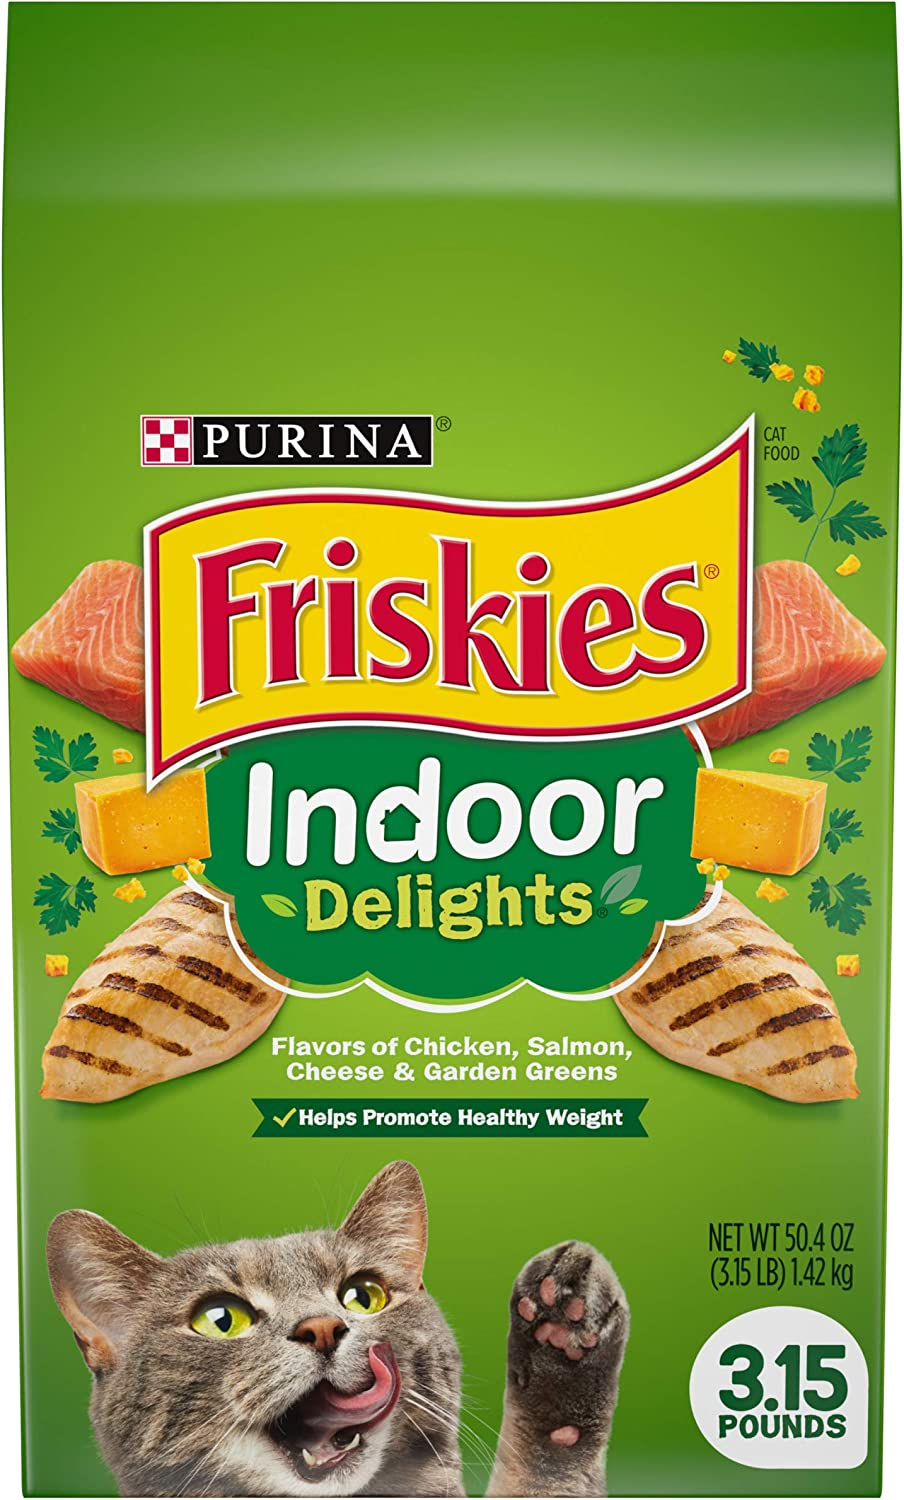 Purina Friskies Indoor Dry Cat Food, Indoor Delights - 3.15 lb. Bags (Pack of 4)